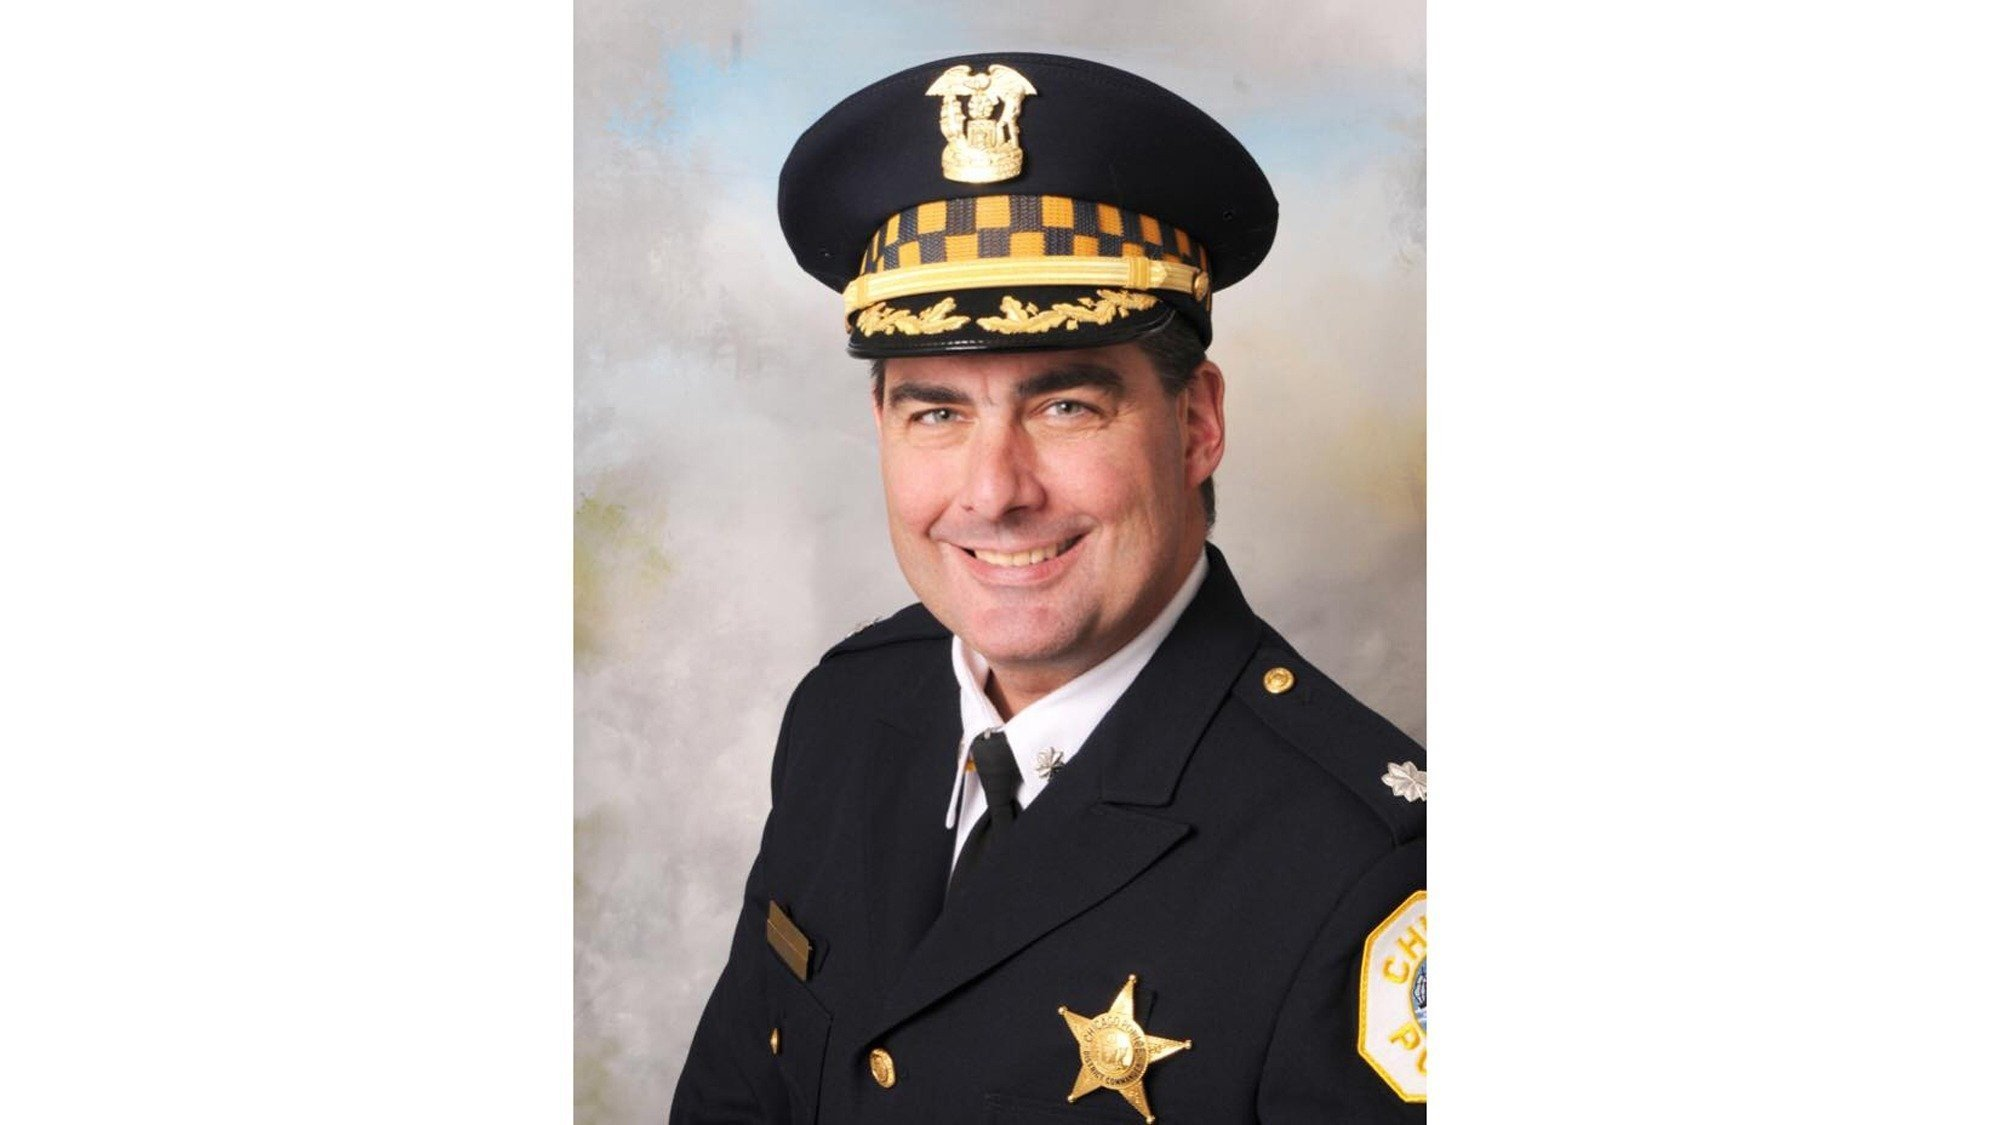 An off-duty police commander who responded to a call was fatally shot Tuesday in downtown Chicago, the city's top officer said.